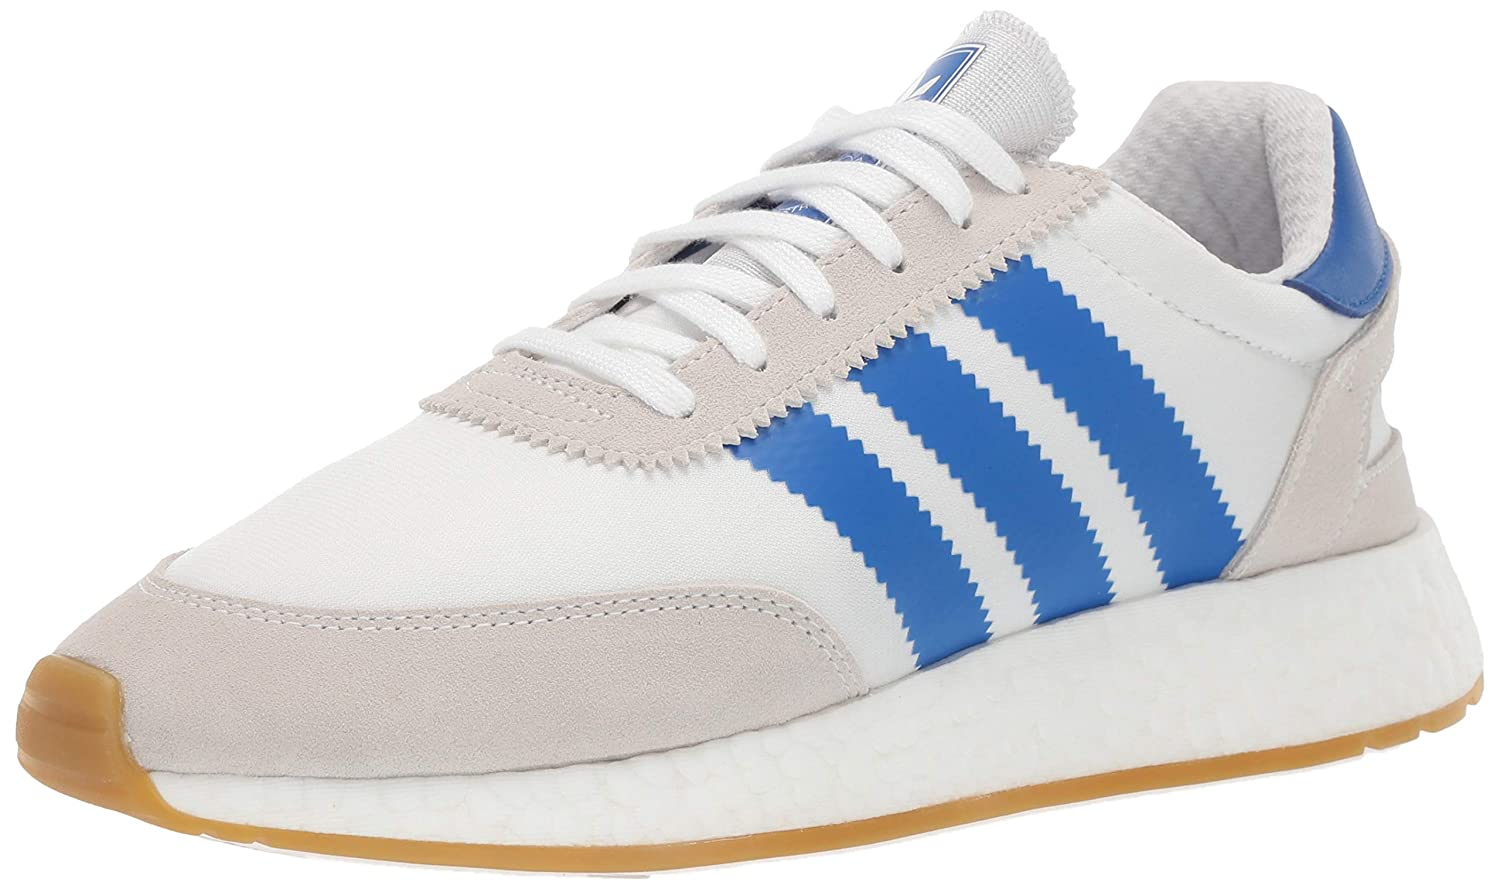 adidas Originals Men's I 5923 Running Shoe, WhiteBlueGum, 8 M US